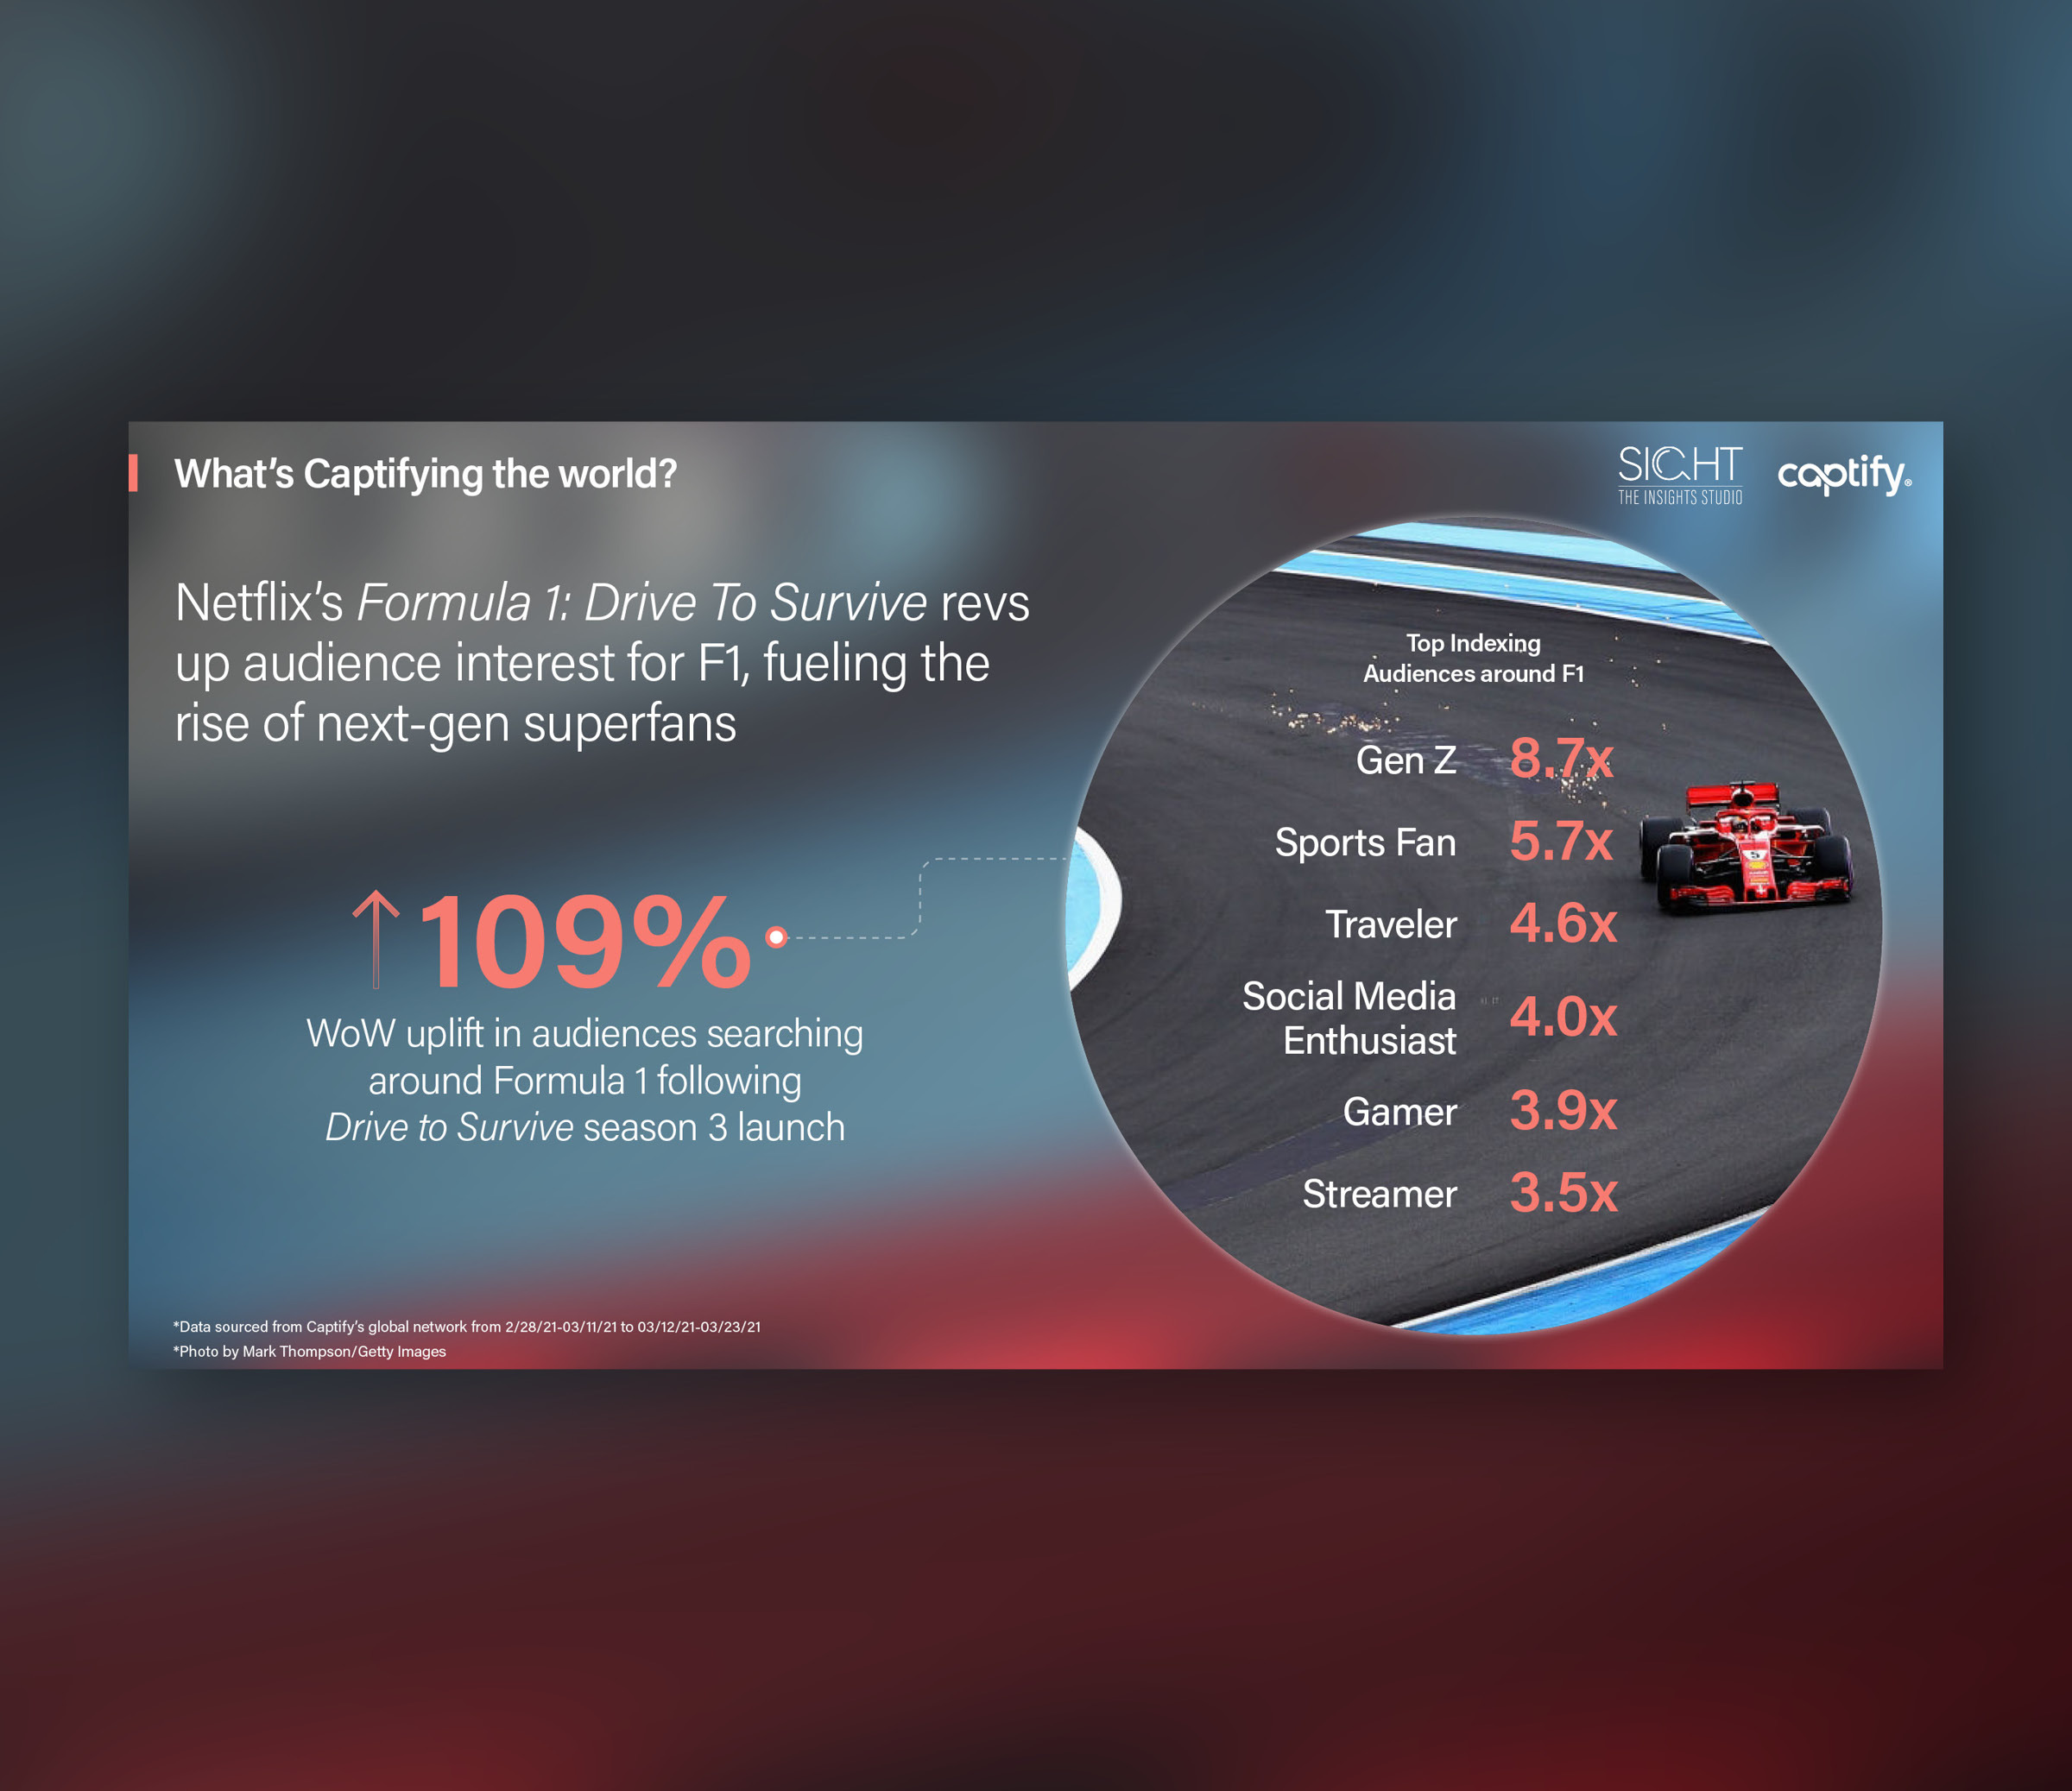 What's Captifying the world: Netflix's Formula 1: Drive To Survive revs up audience interest for F1, fueling the rise of next-gen superfans